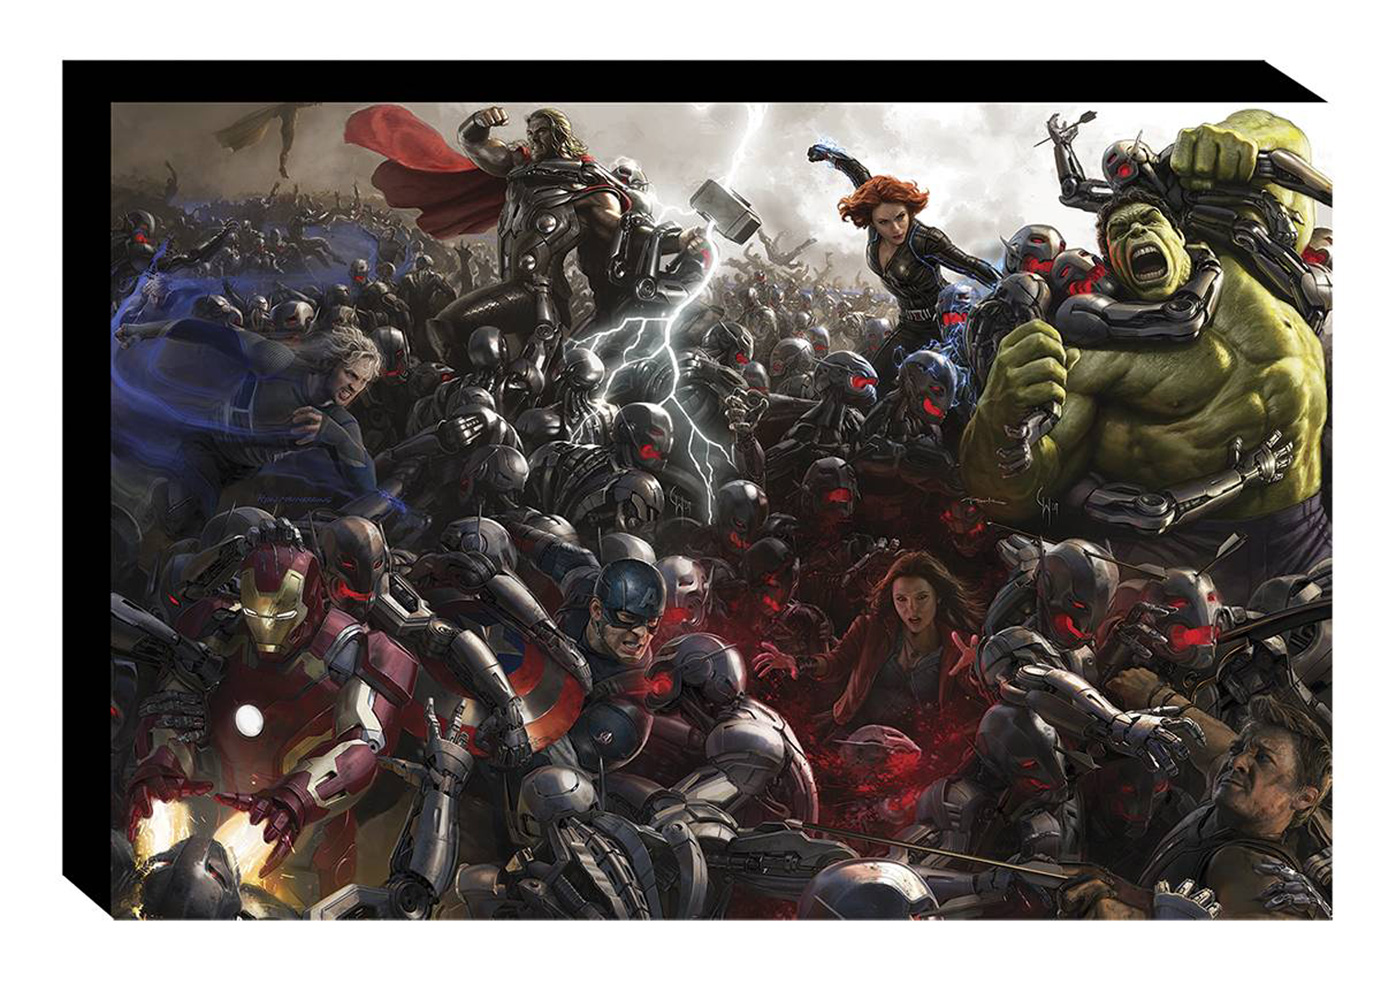 Marvel's Avengers: Age of Ultron - The Art of the Movie